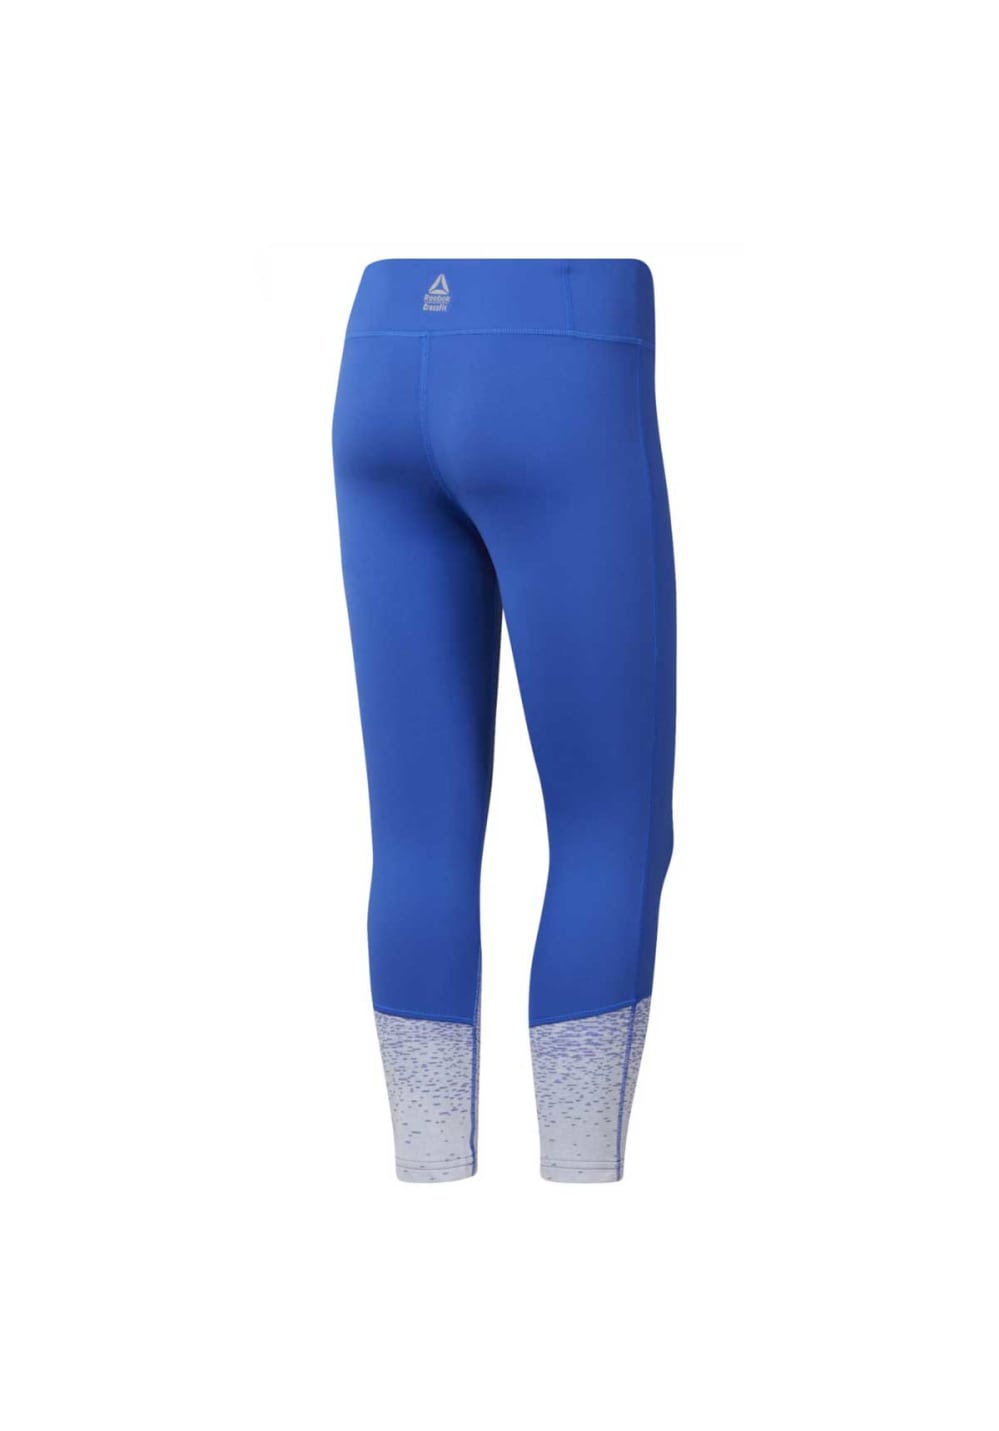 8f0979a6b85 Next. -32%. Reebok. Crossfit Lux Fade 3 4 Tights - Fitness trousers for  Women